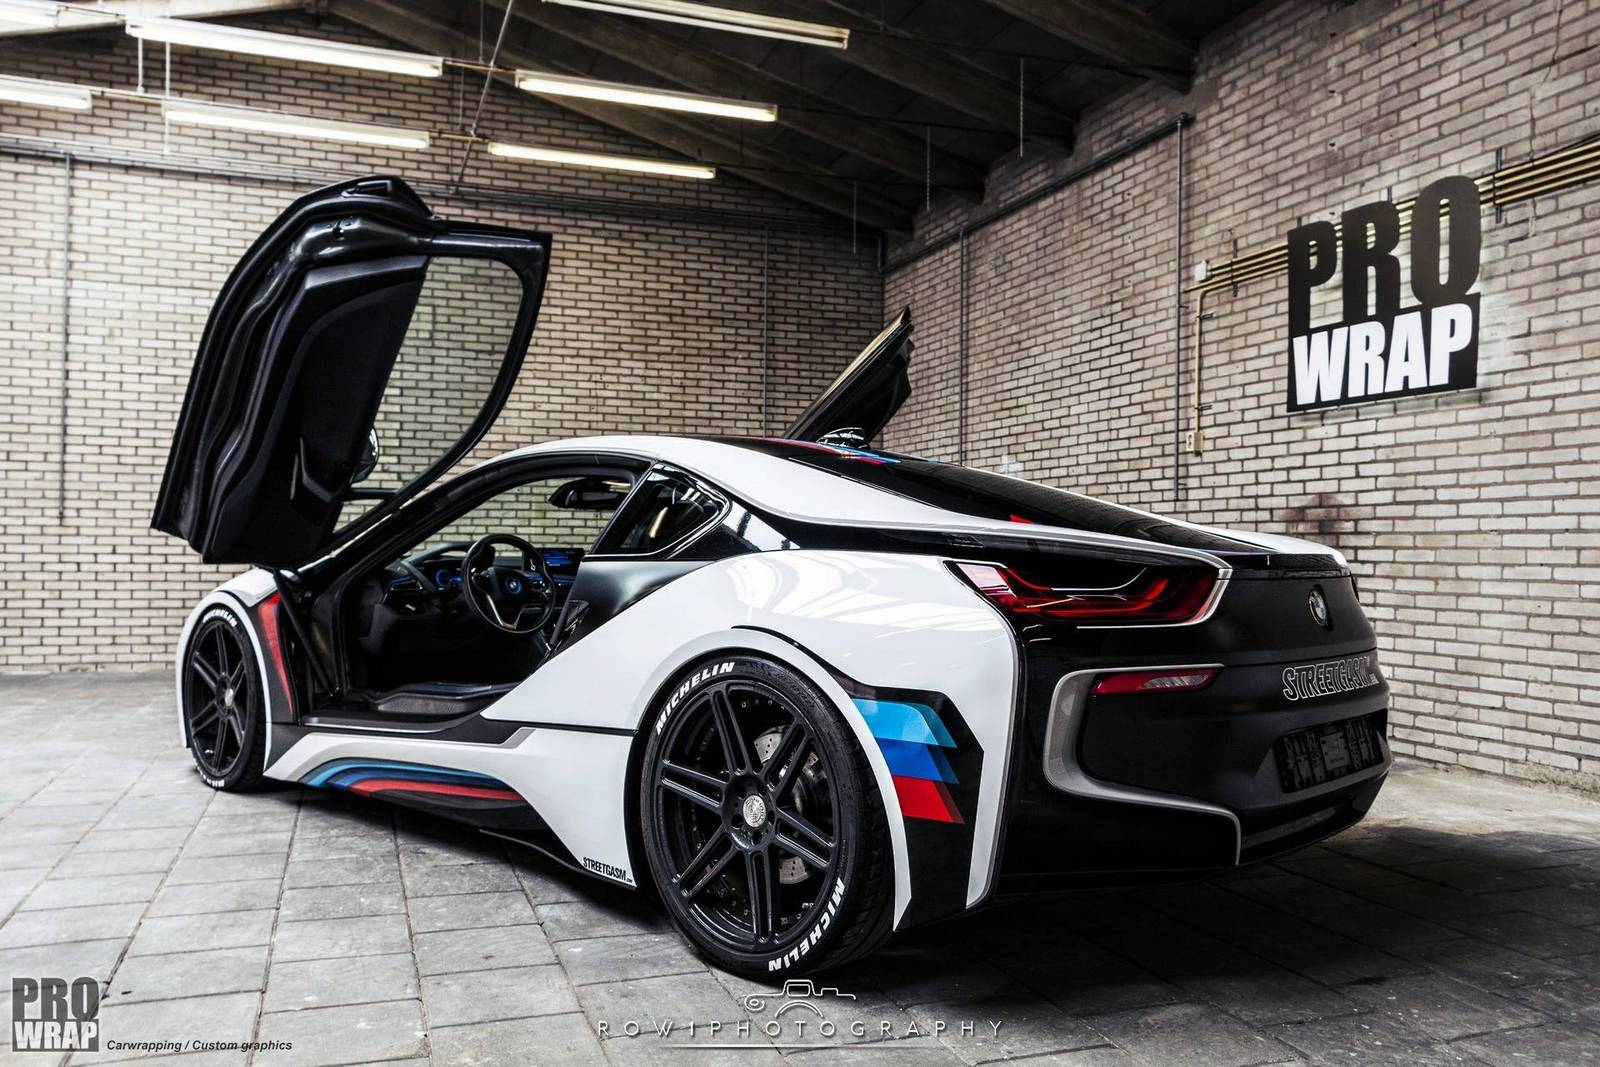 custom wrapped bmw i8 by prowrap in the netherlands gtspirit. Black Bedroom Furniture Sets. Home Design Ideas